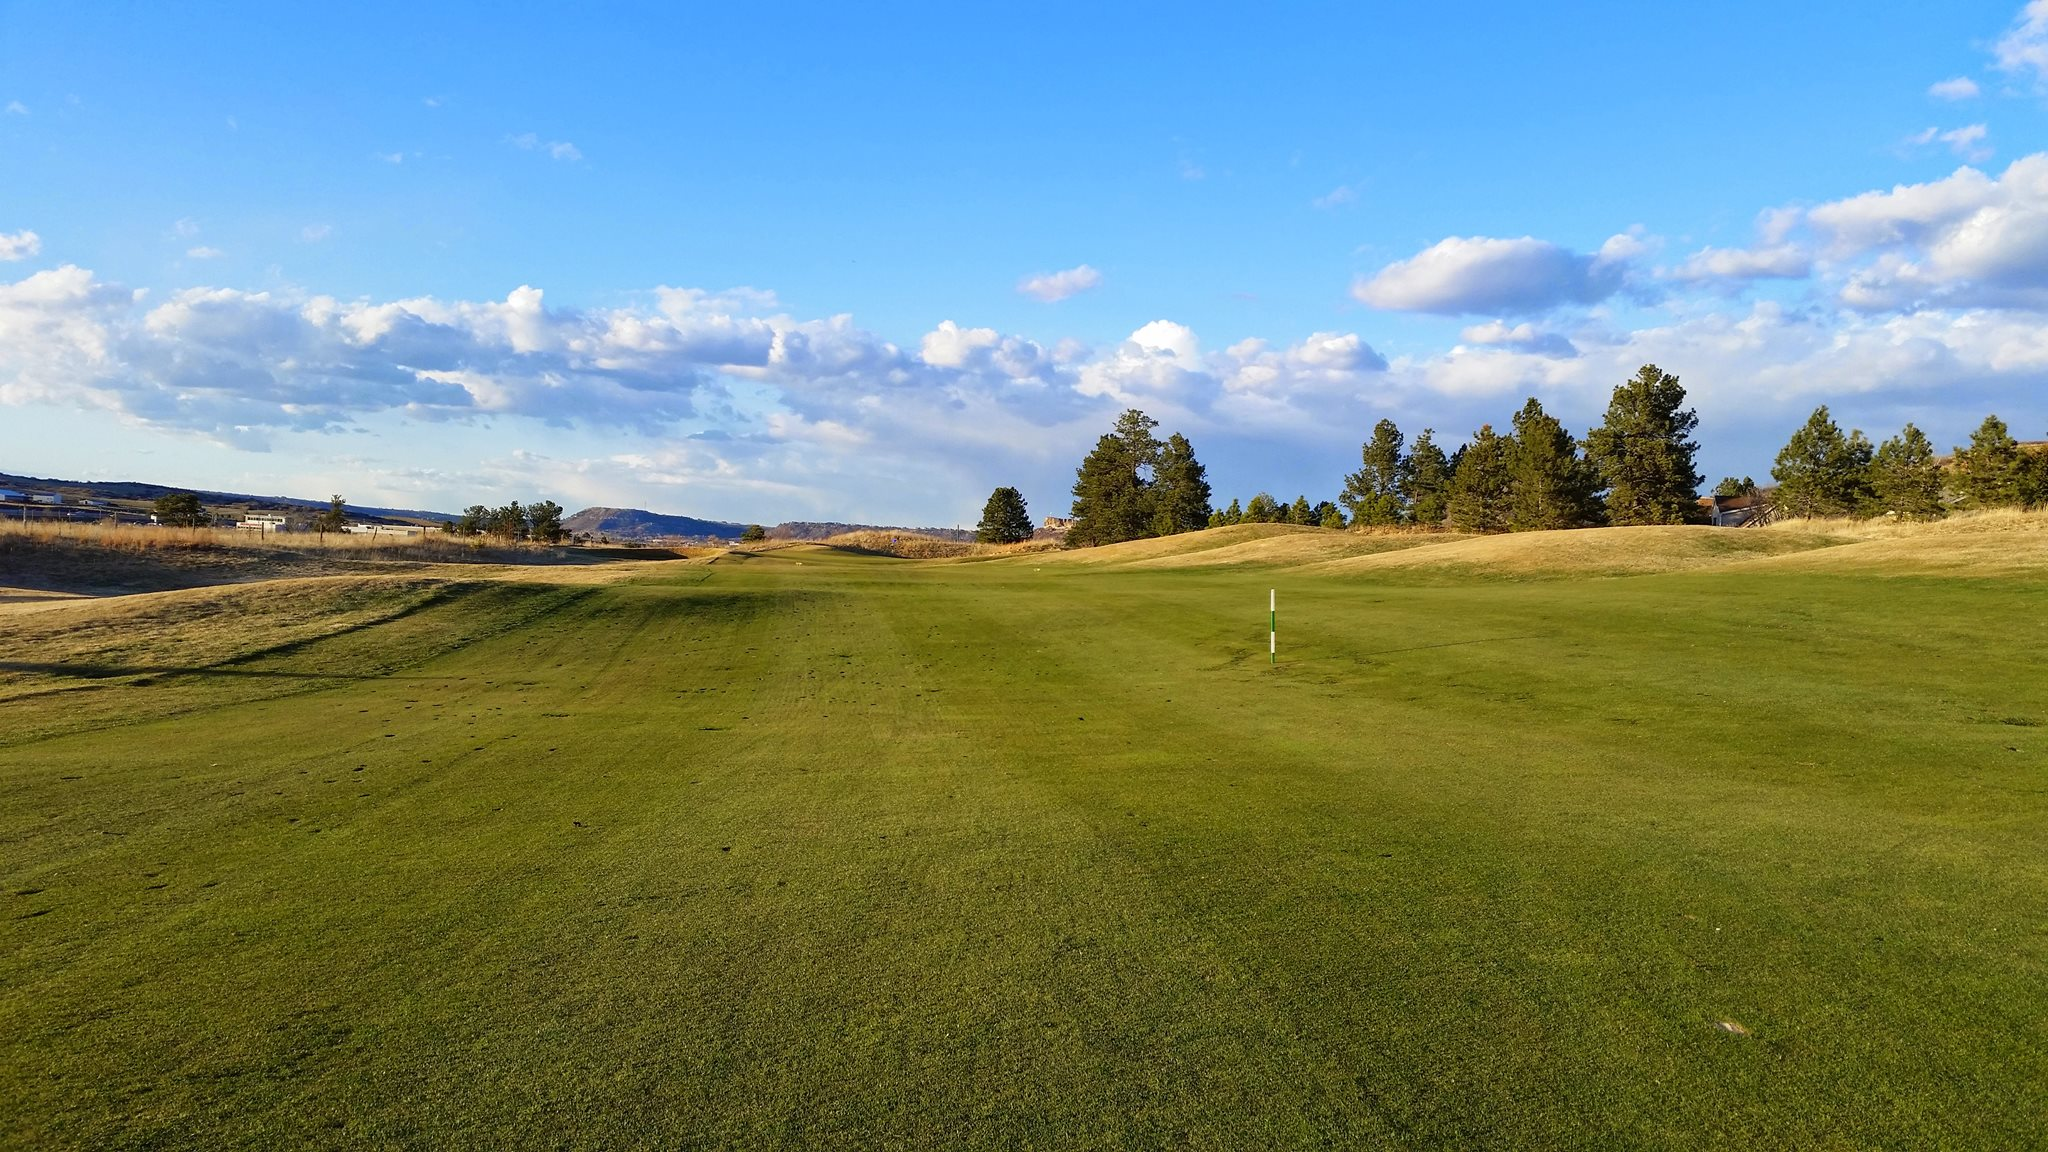 Overview of golf course named Plum Creek Golf and Country Club